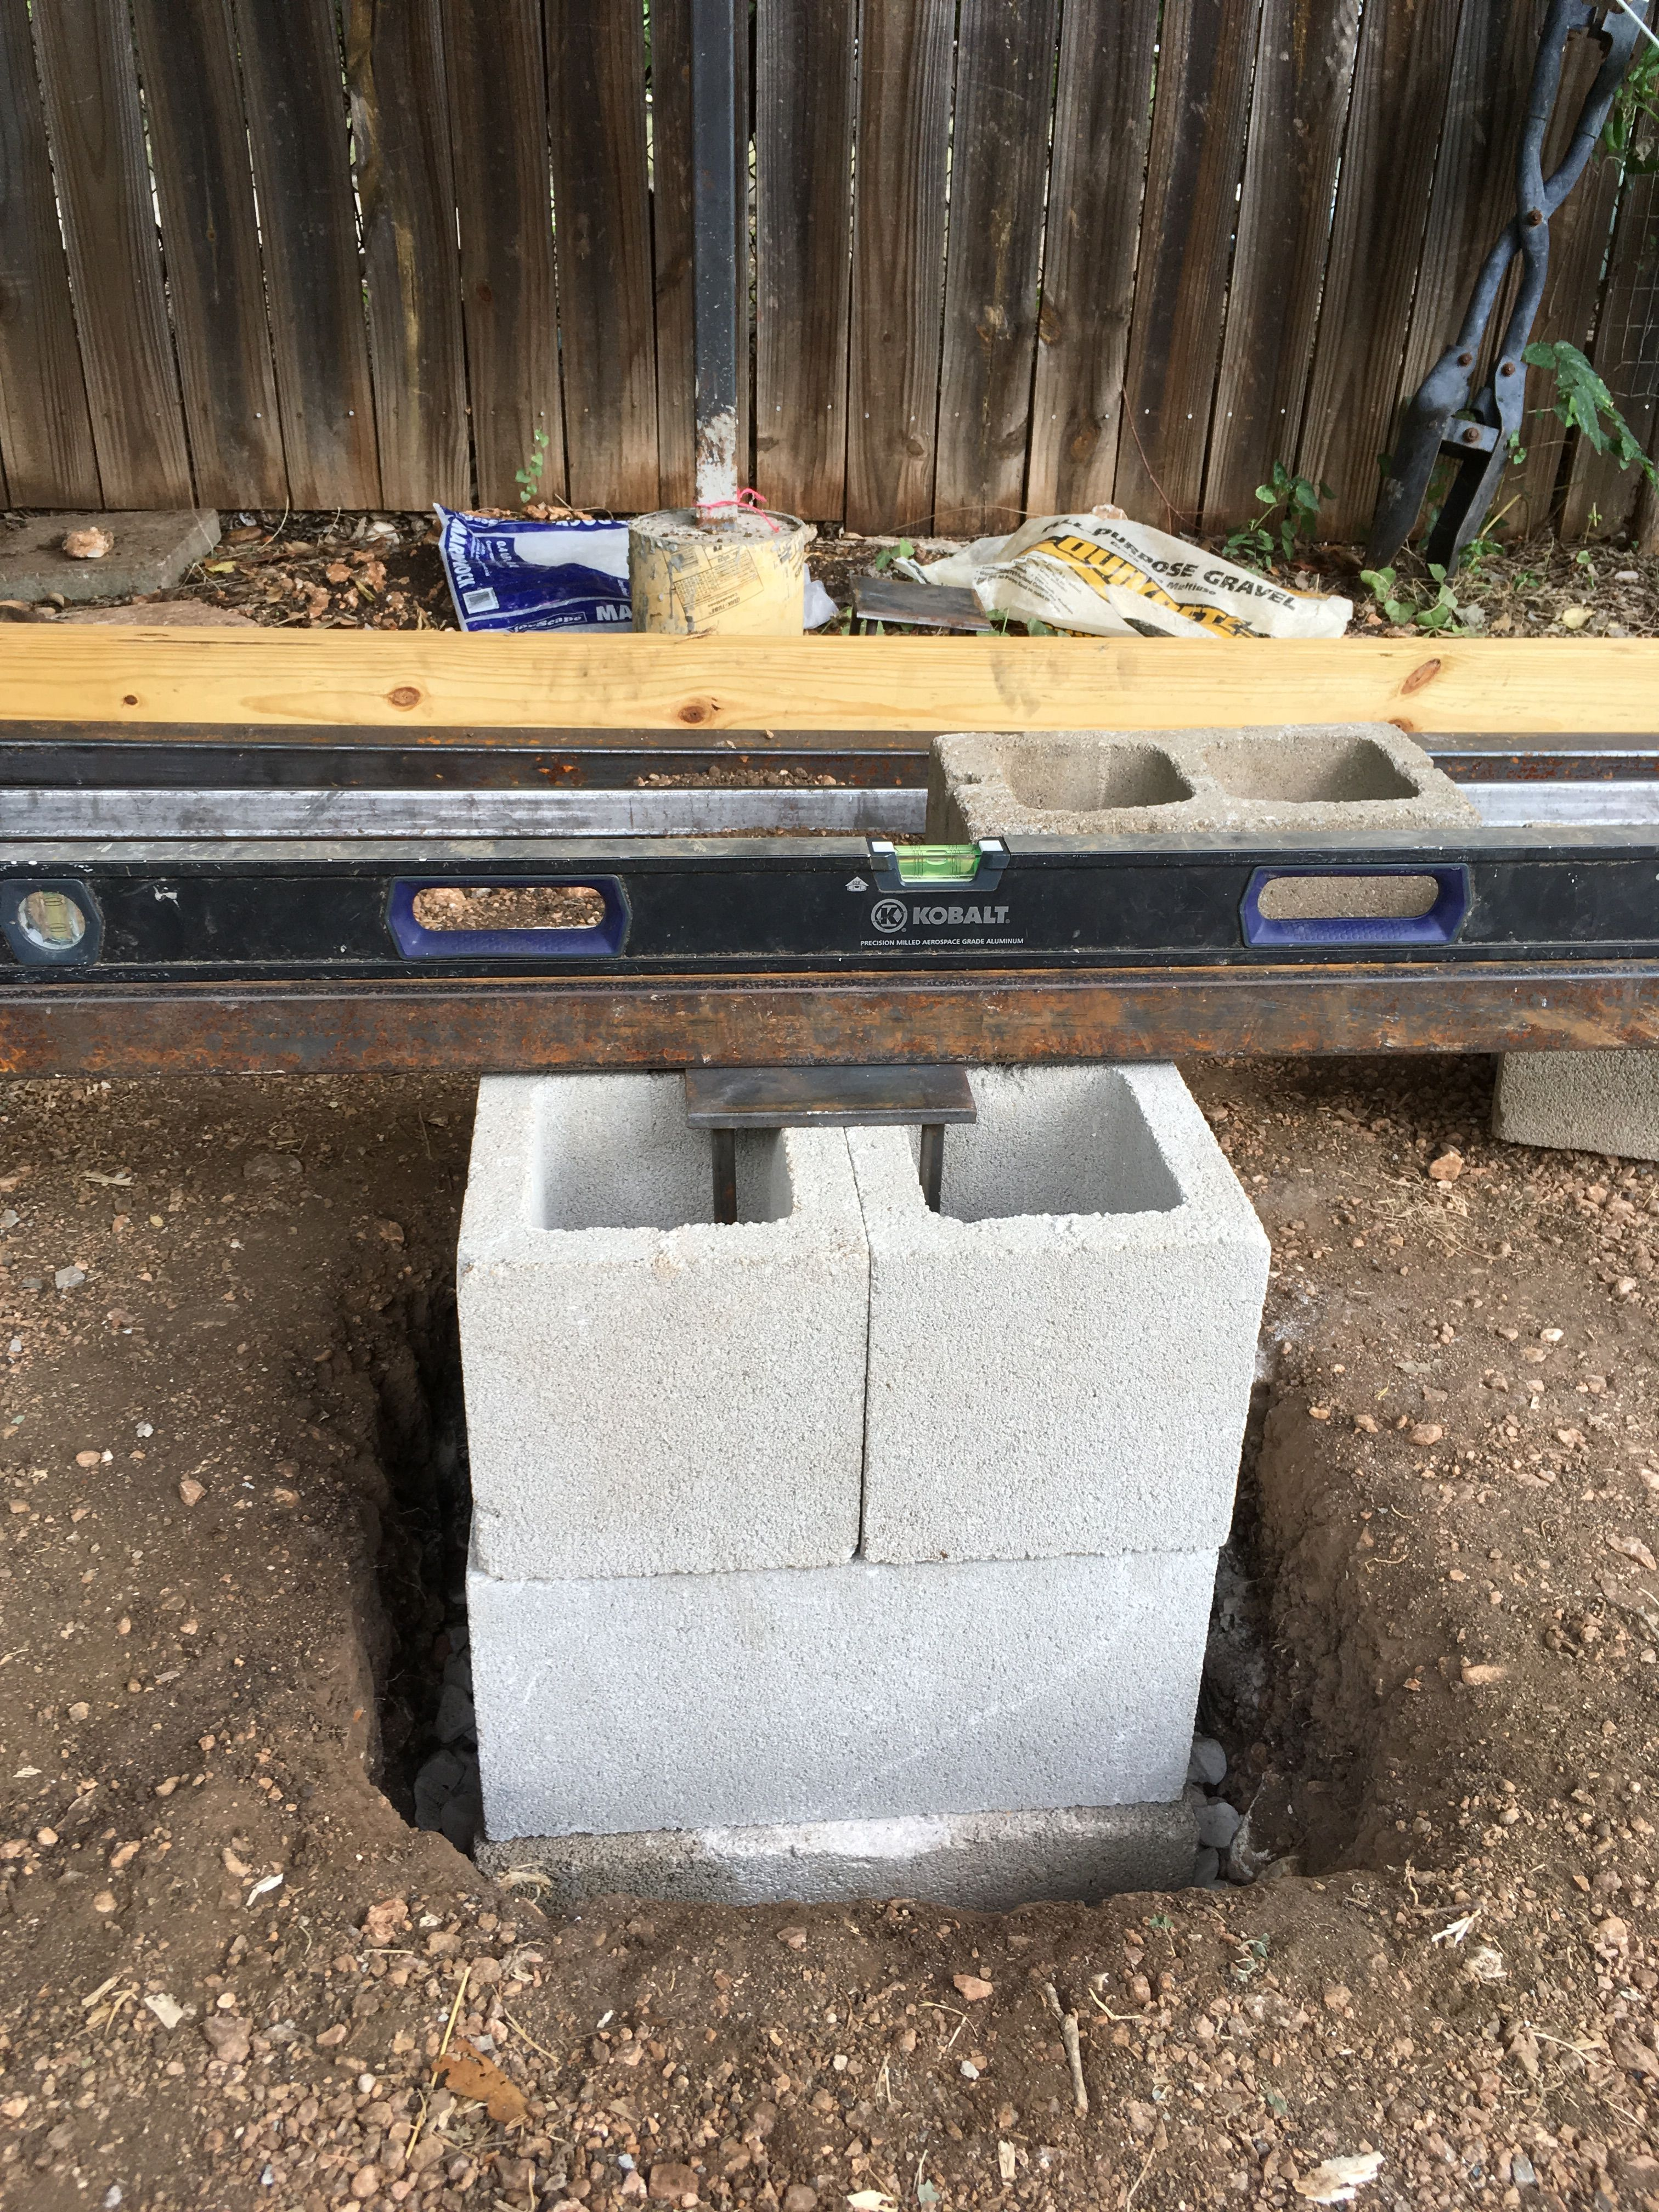 Concrete pier mockup for floor support for gear shed